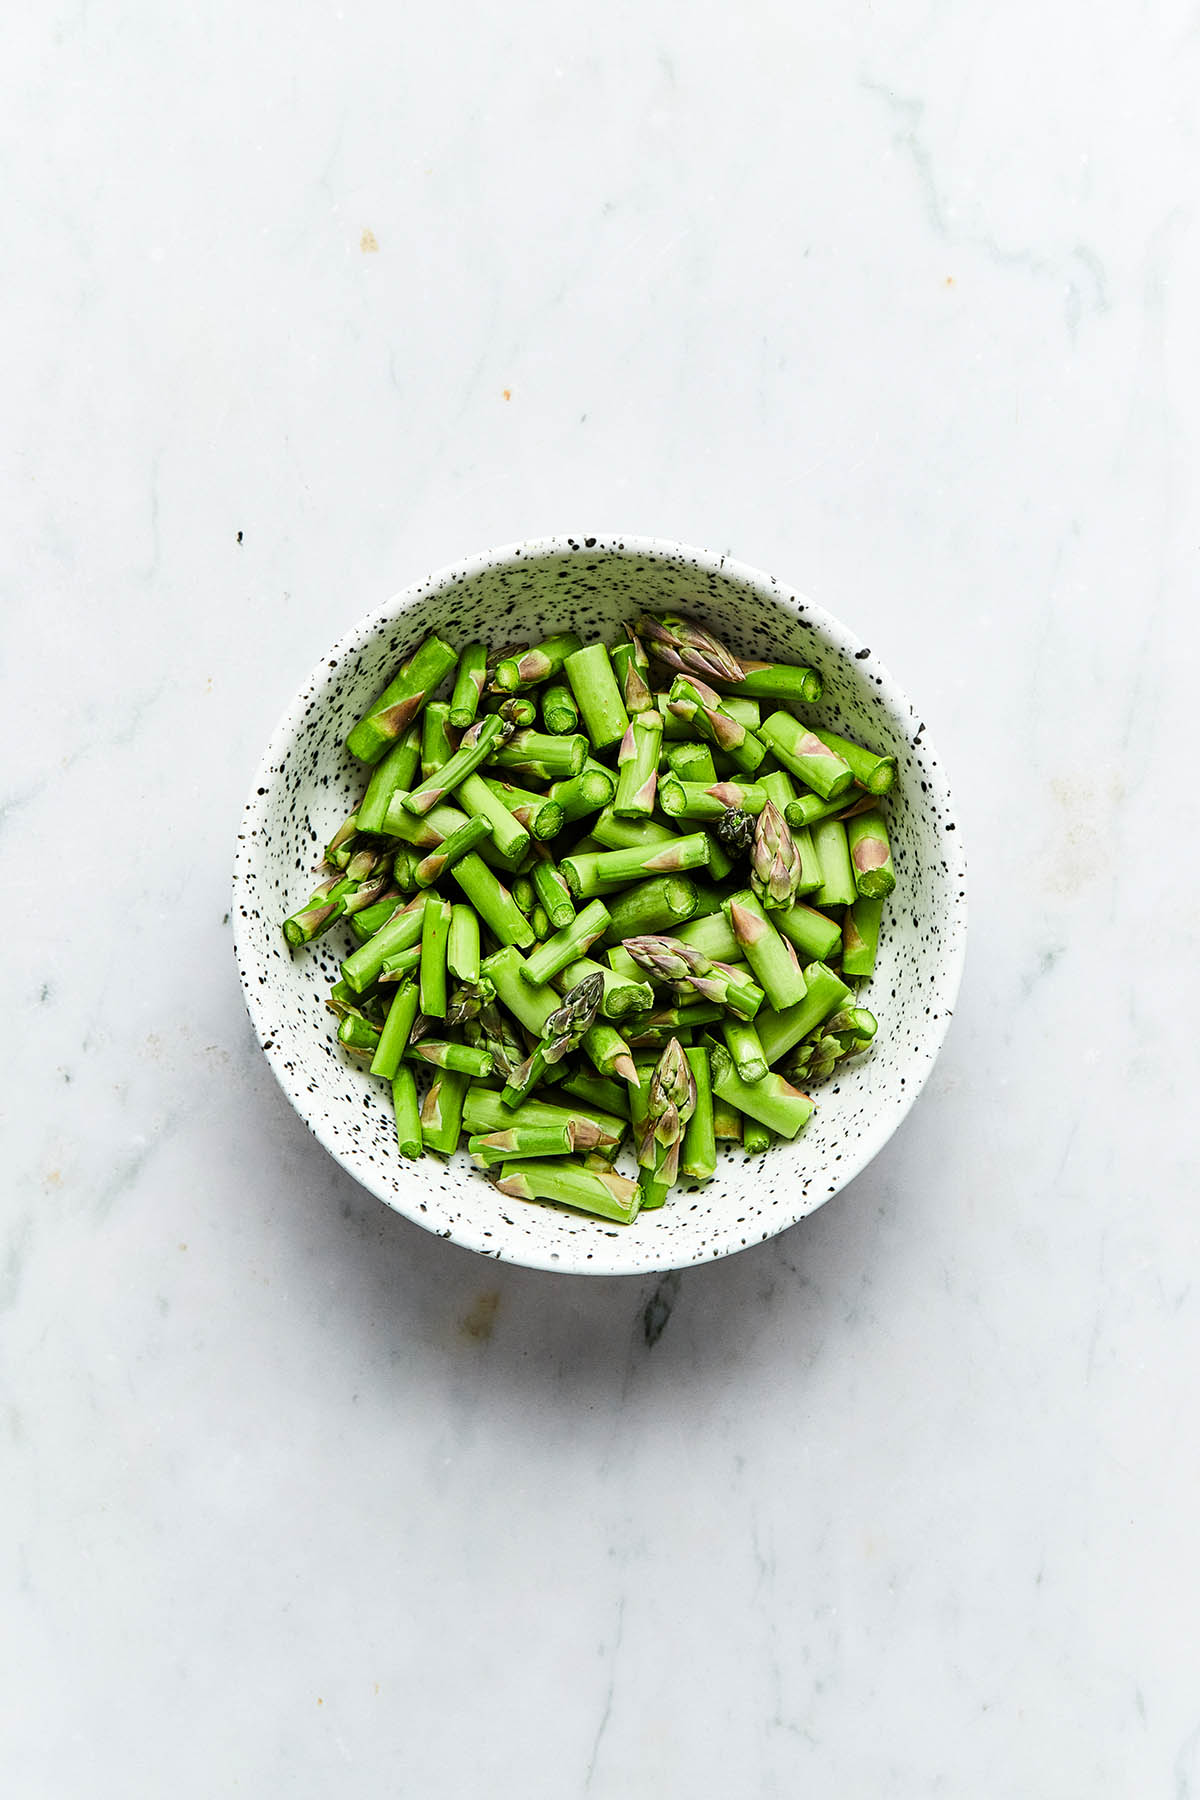 A bowl of uncooked chopped asparagus.